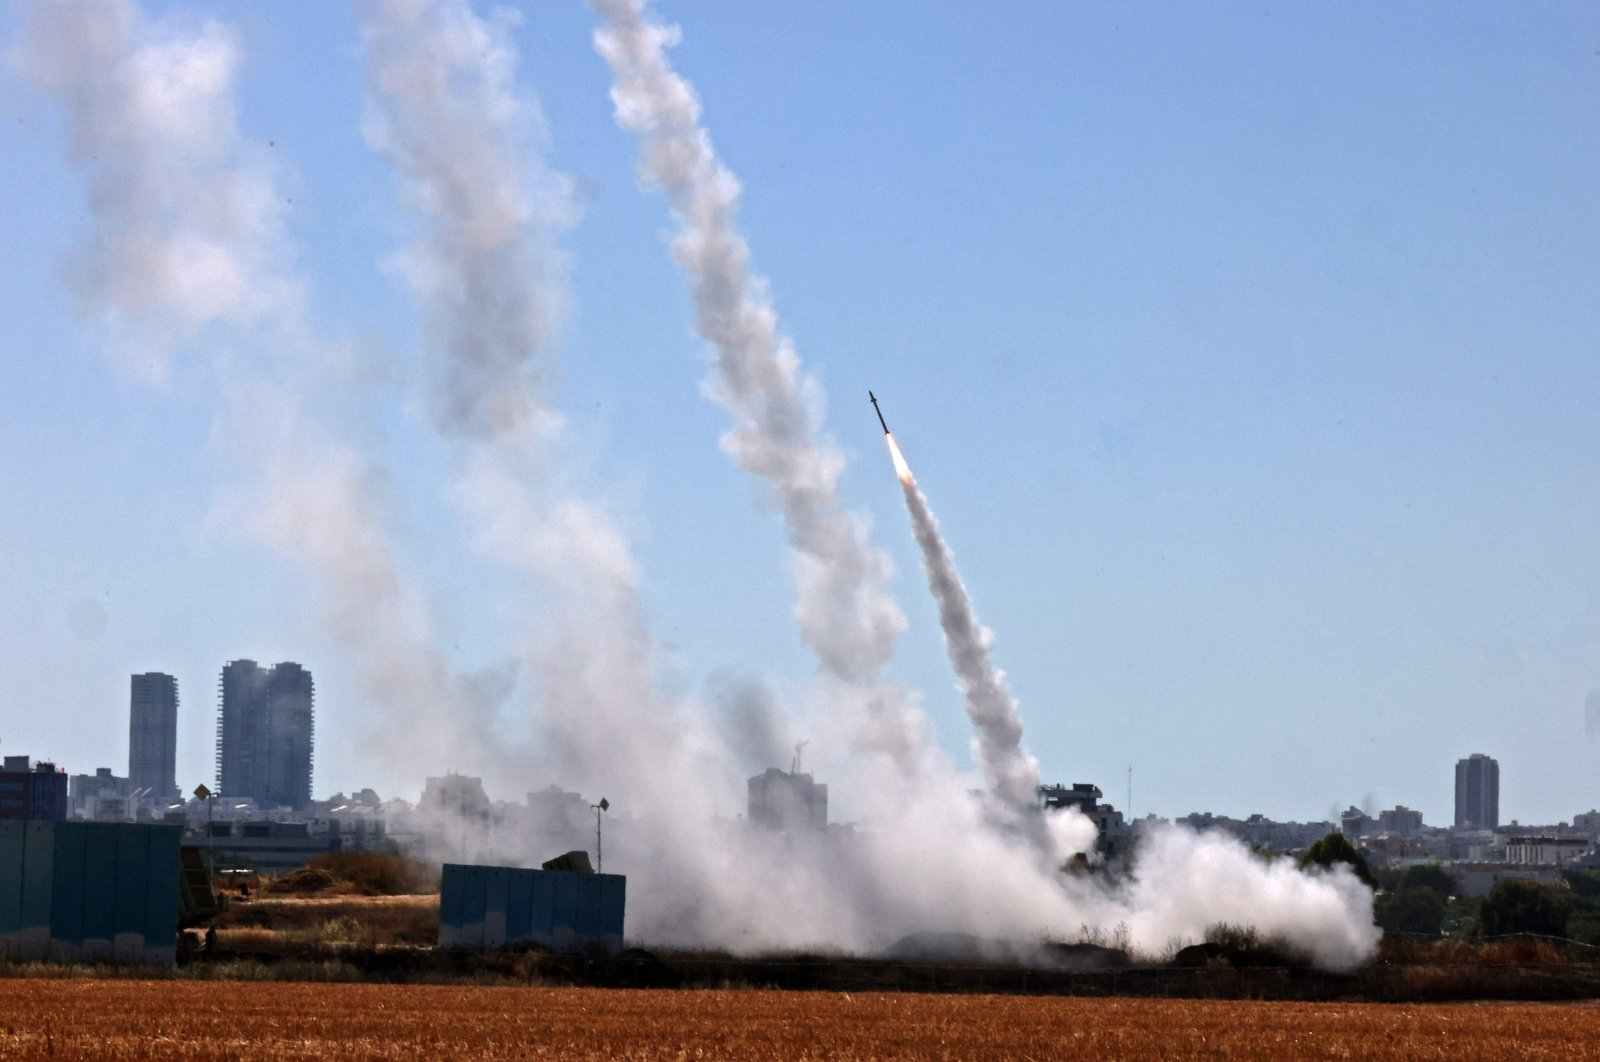 Israel's Iron Dome aerial defence system is activated to intercept a rocket launched from the Gaza Strip, controlled by the Palestinian Hamas movement, above the southern Israeli city of Ashdod, on May 12, 2021. (AFP Photo)